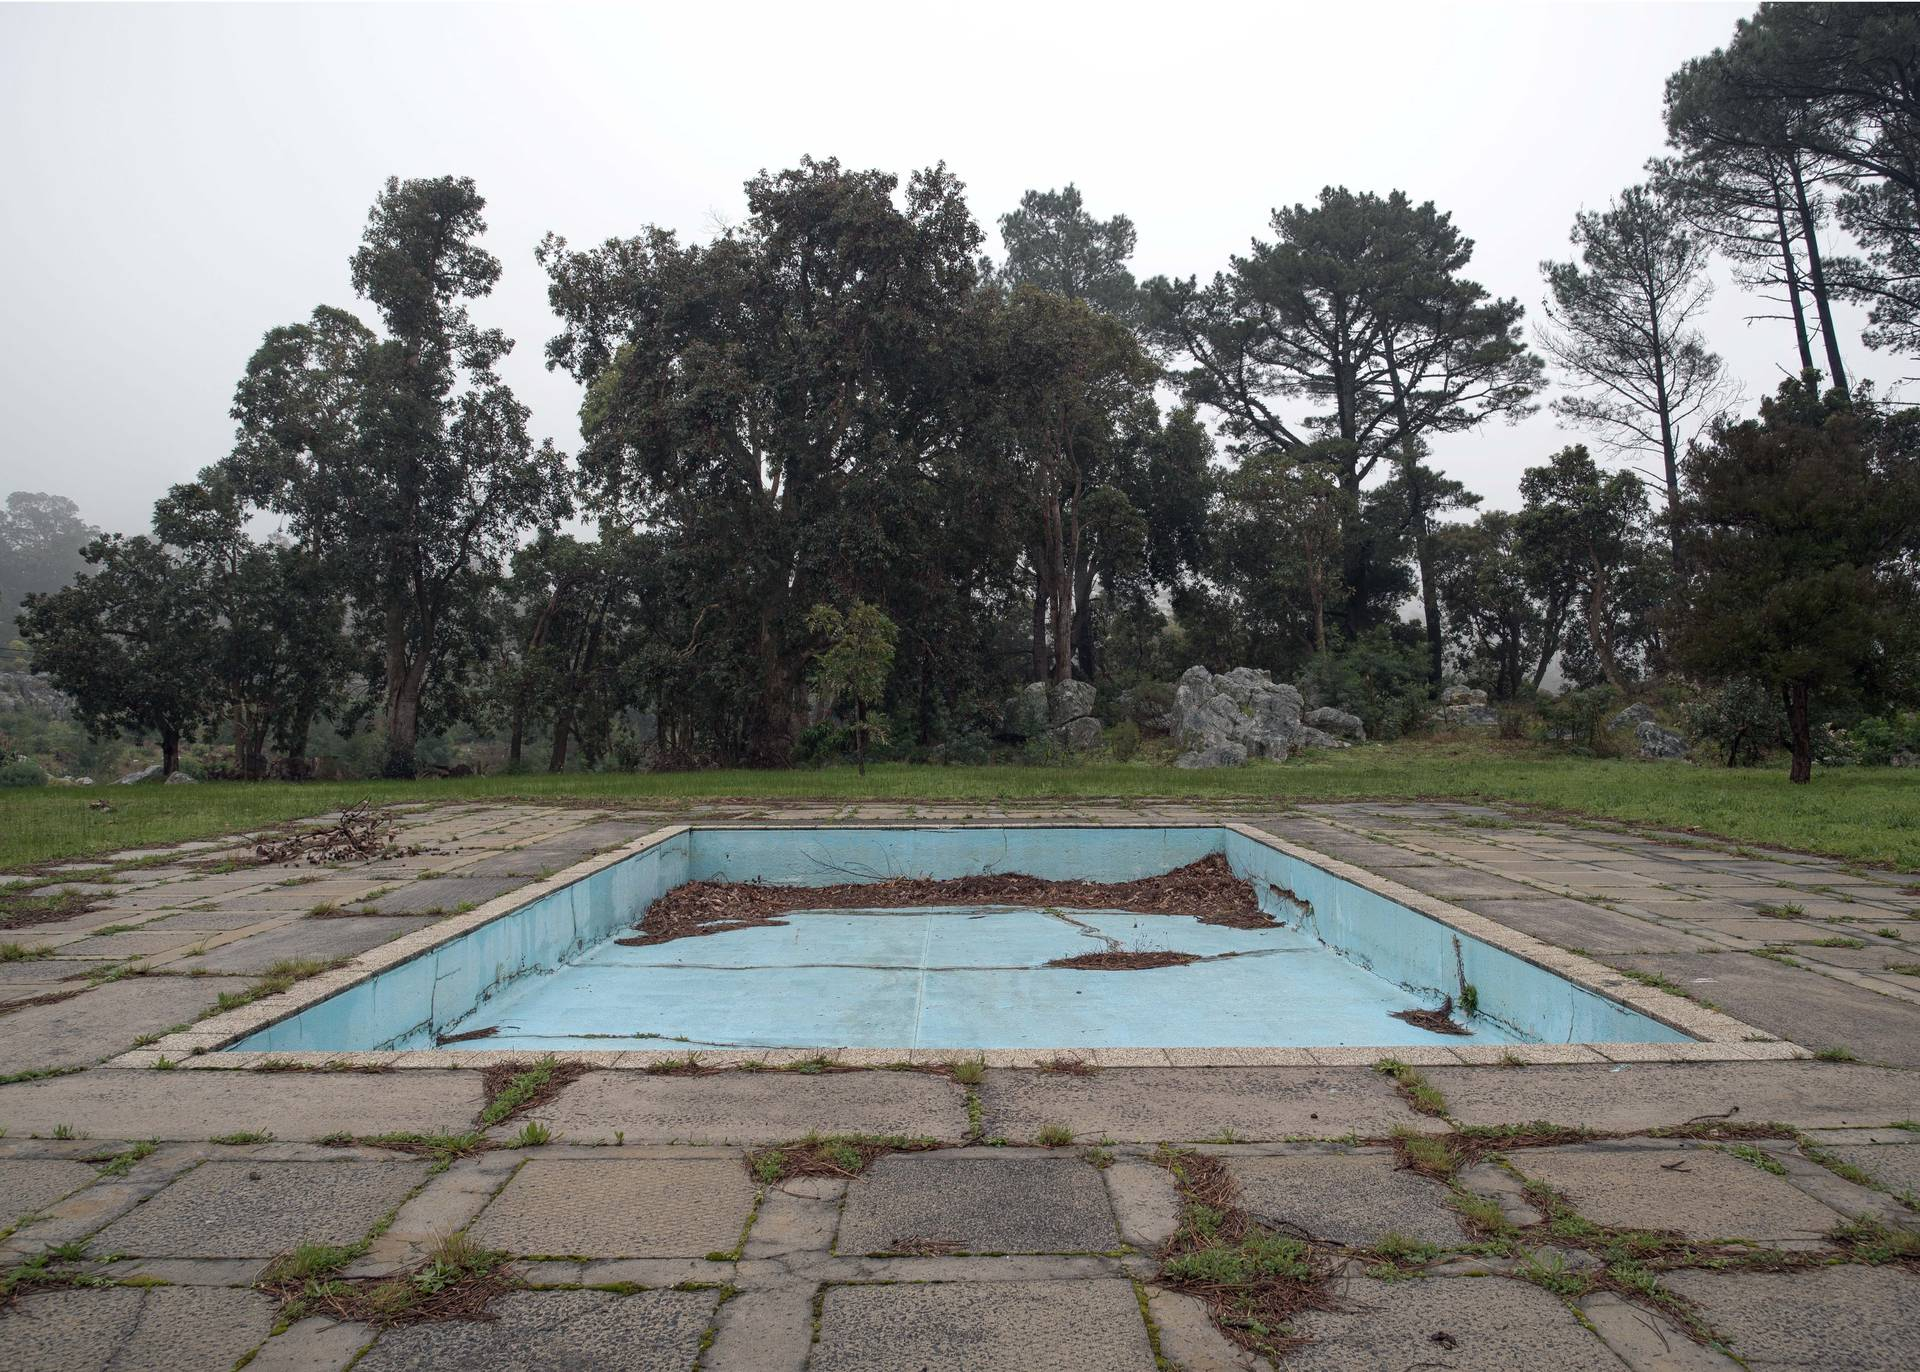 A pool located at the Steenbras Dam. Ironic that a pool located about 50 m from the Steenbras Dam is itself empty and dilapidated.